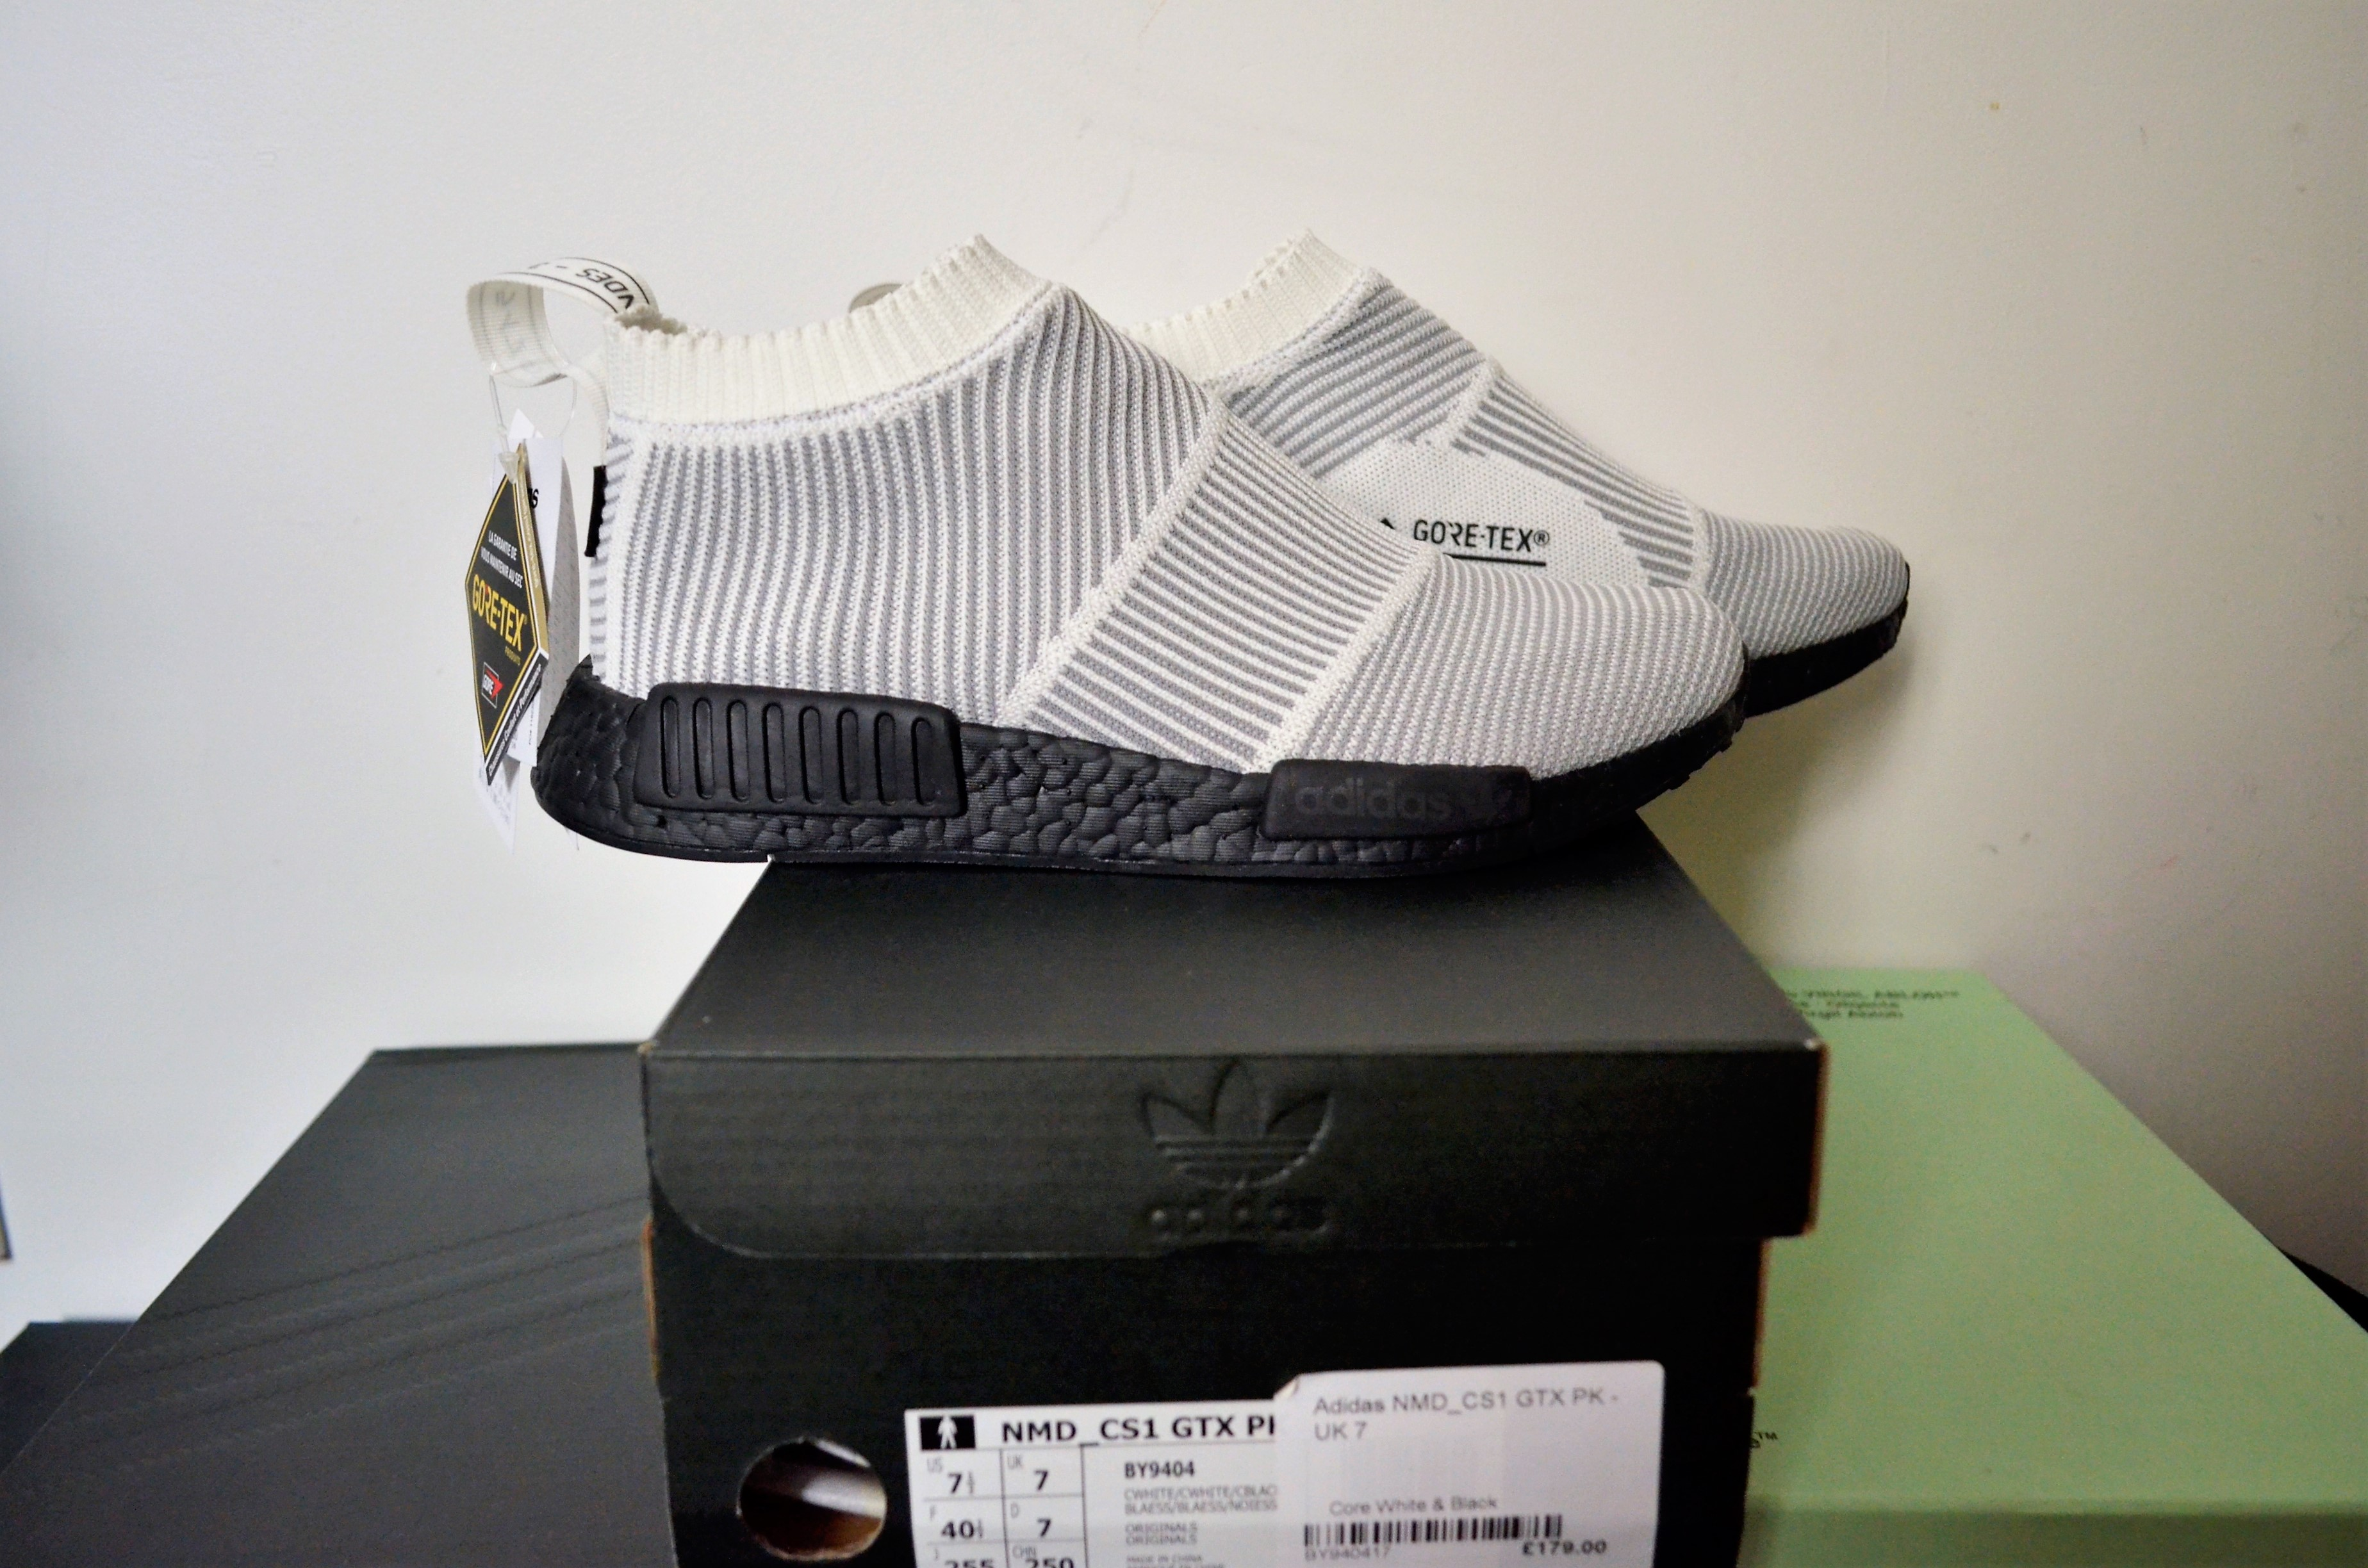 626ba172e Adidas Adidas NMD City Sock 1 GoreTex Prinknit (Water Proof) US 7.5 Size  7.5 - Low-Top Sneakers for Sale - Grailed